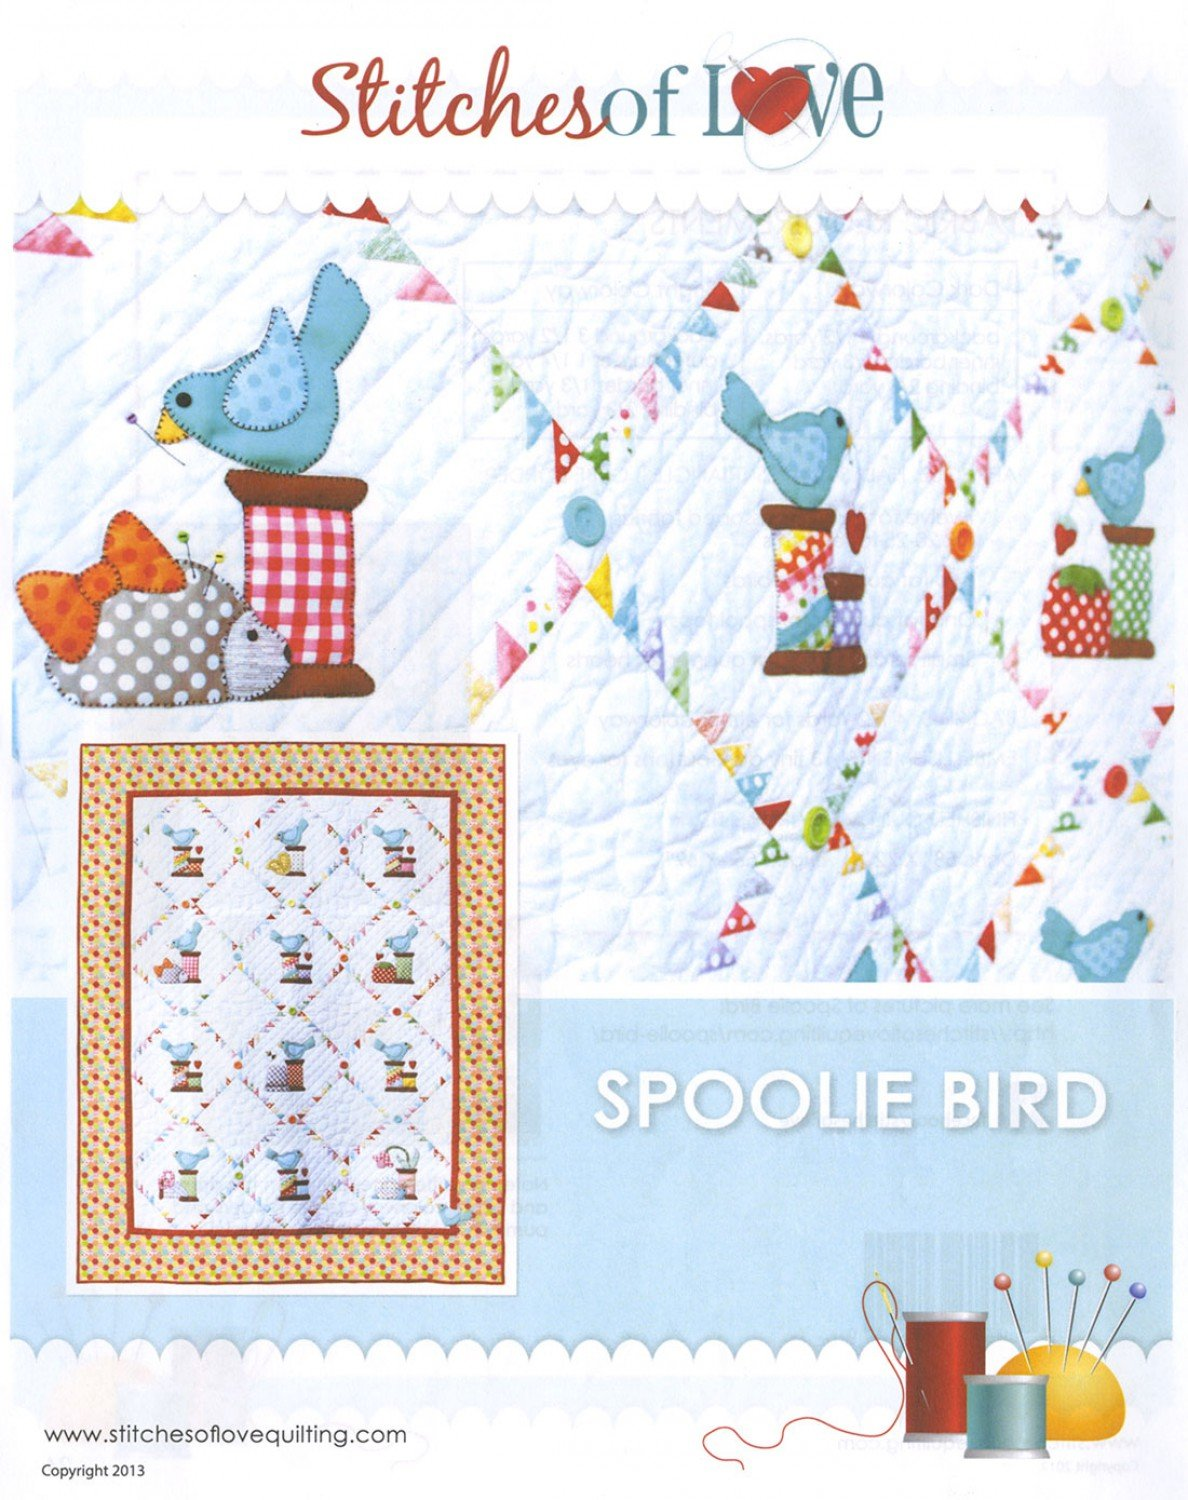 Spoolie Bird by Stitches of Love